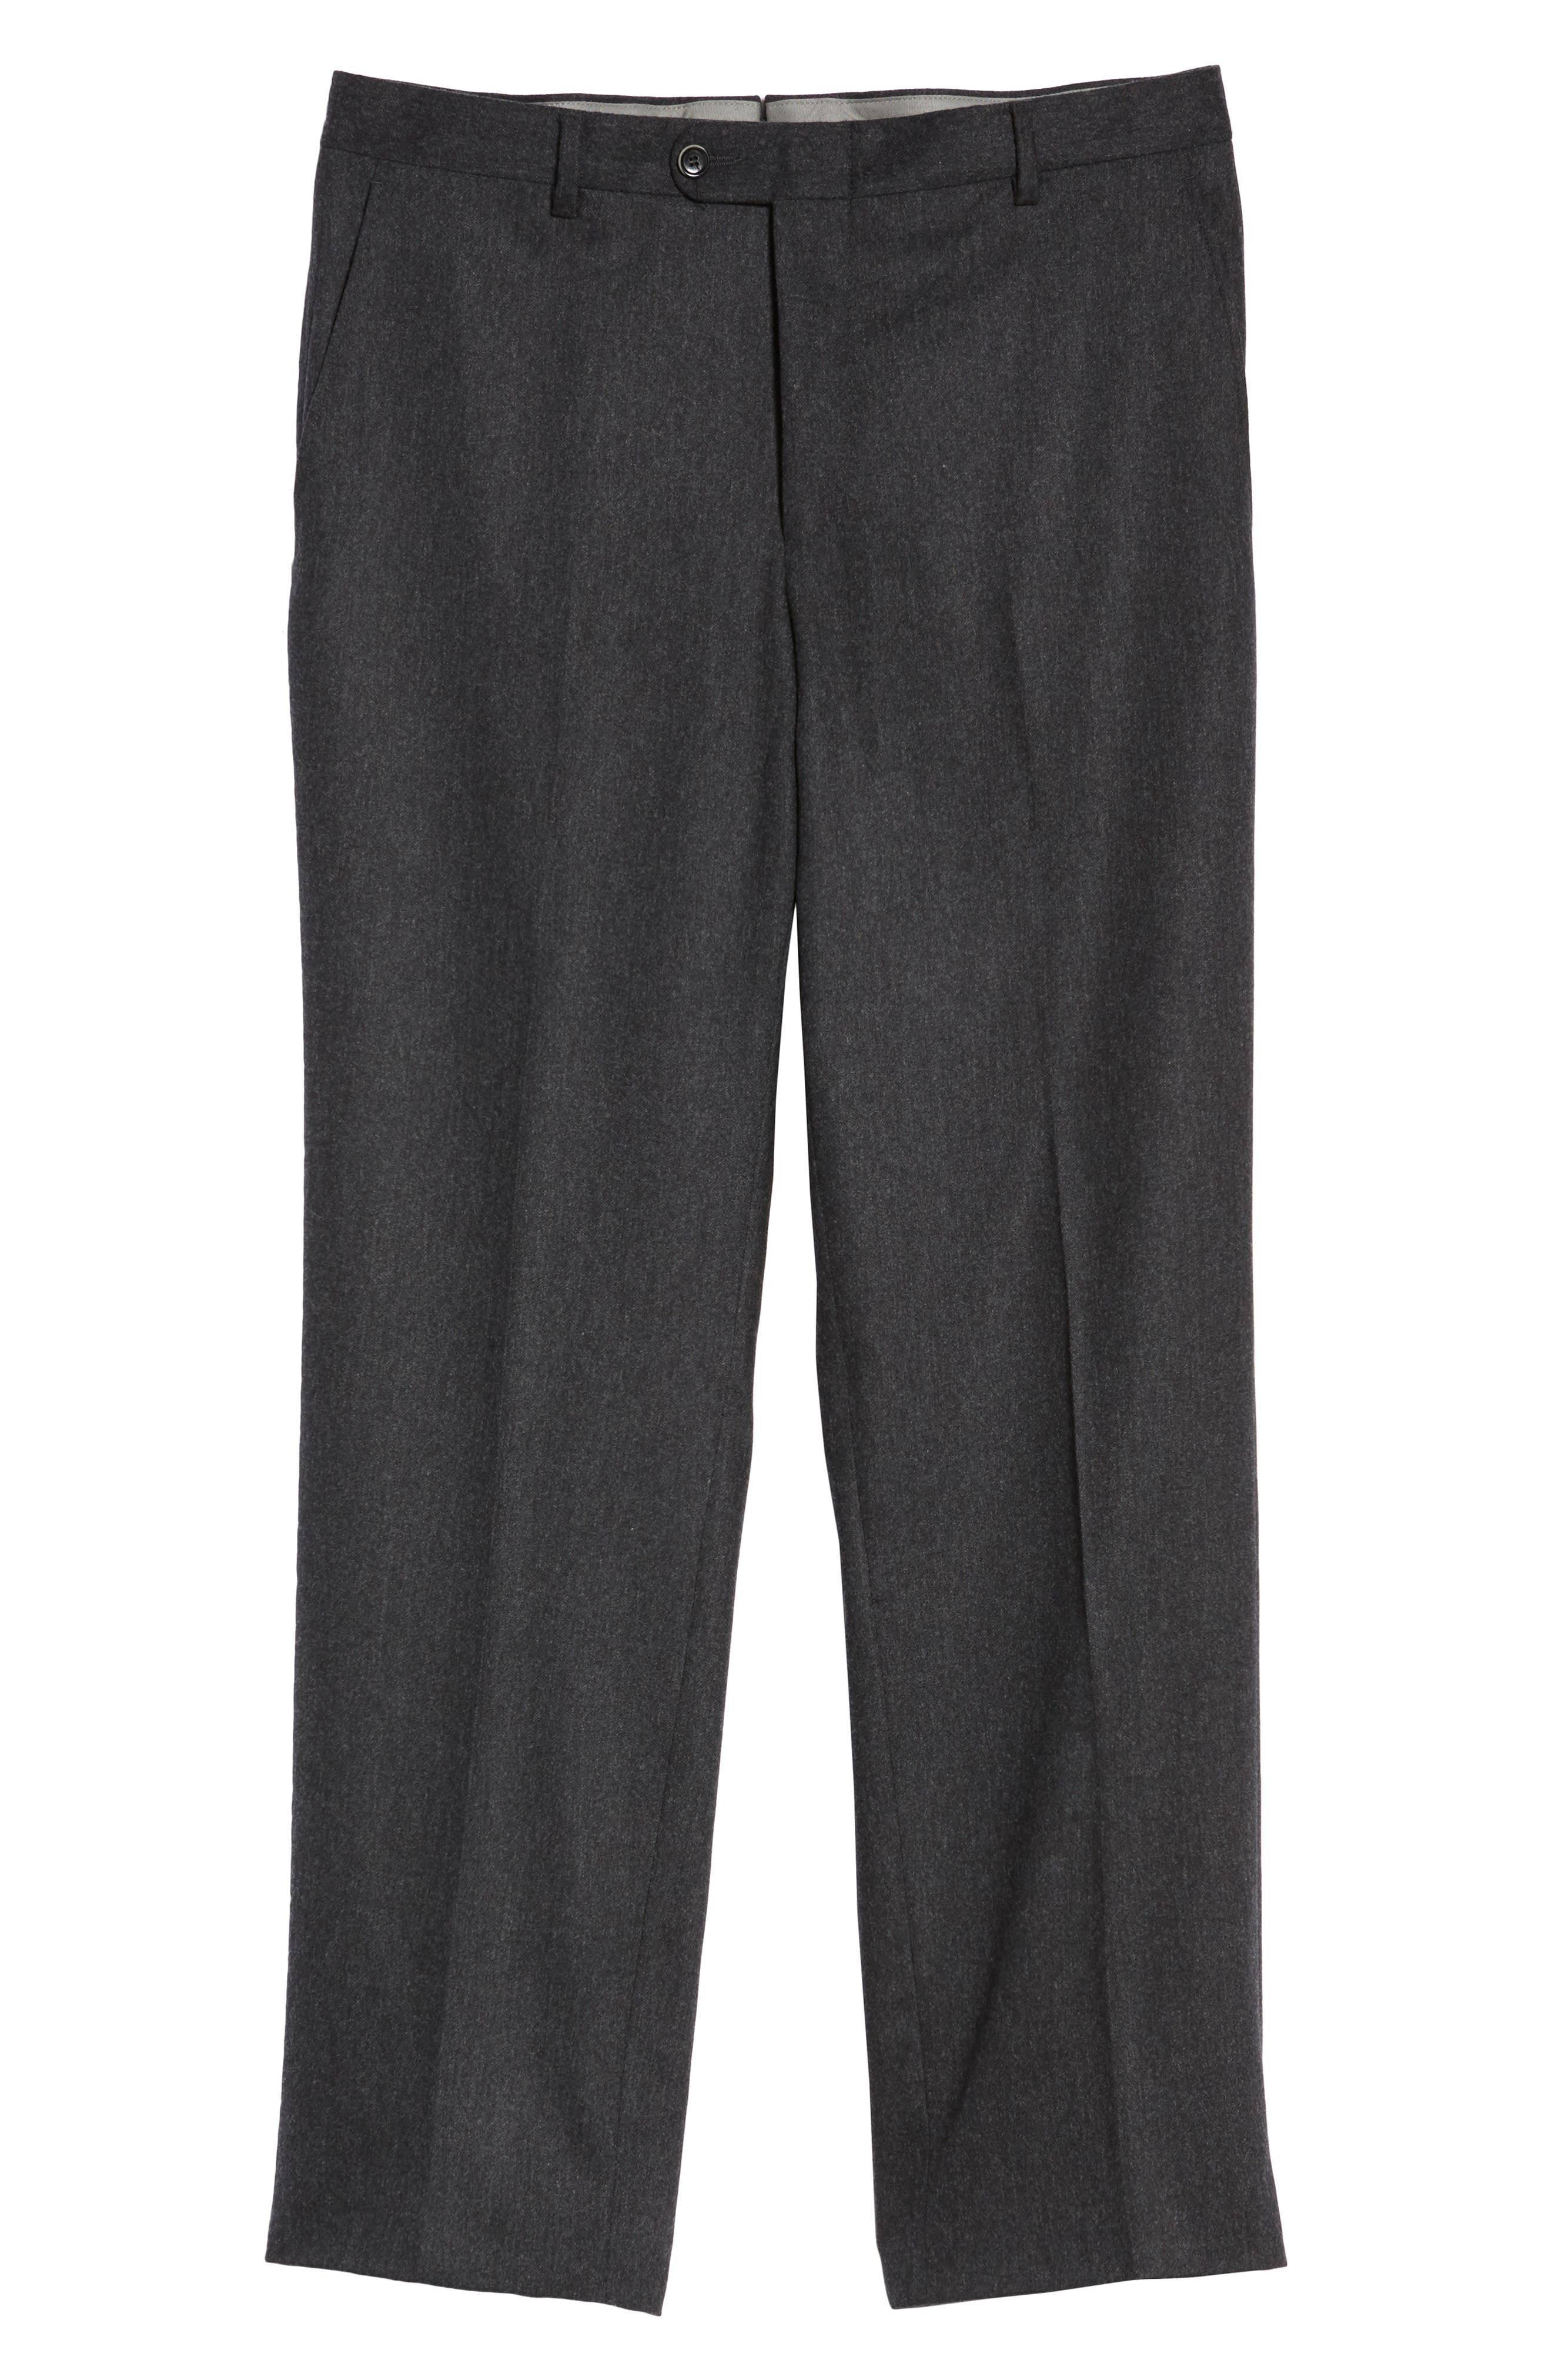 Classic B Fit Flat Front Solid Wool Blend Trousers,                             Alternate thumbnail 6, color,